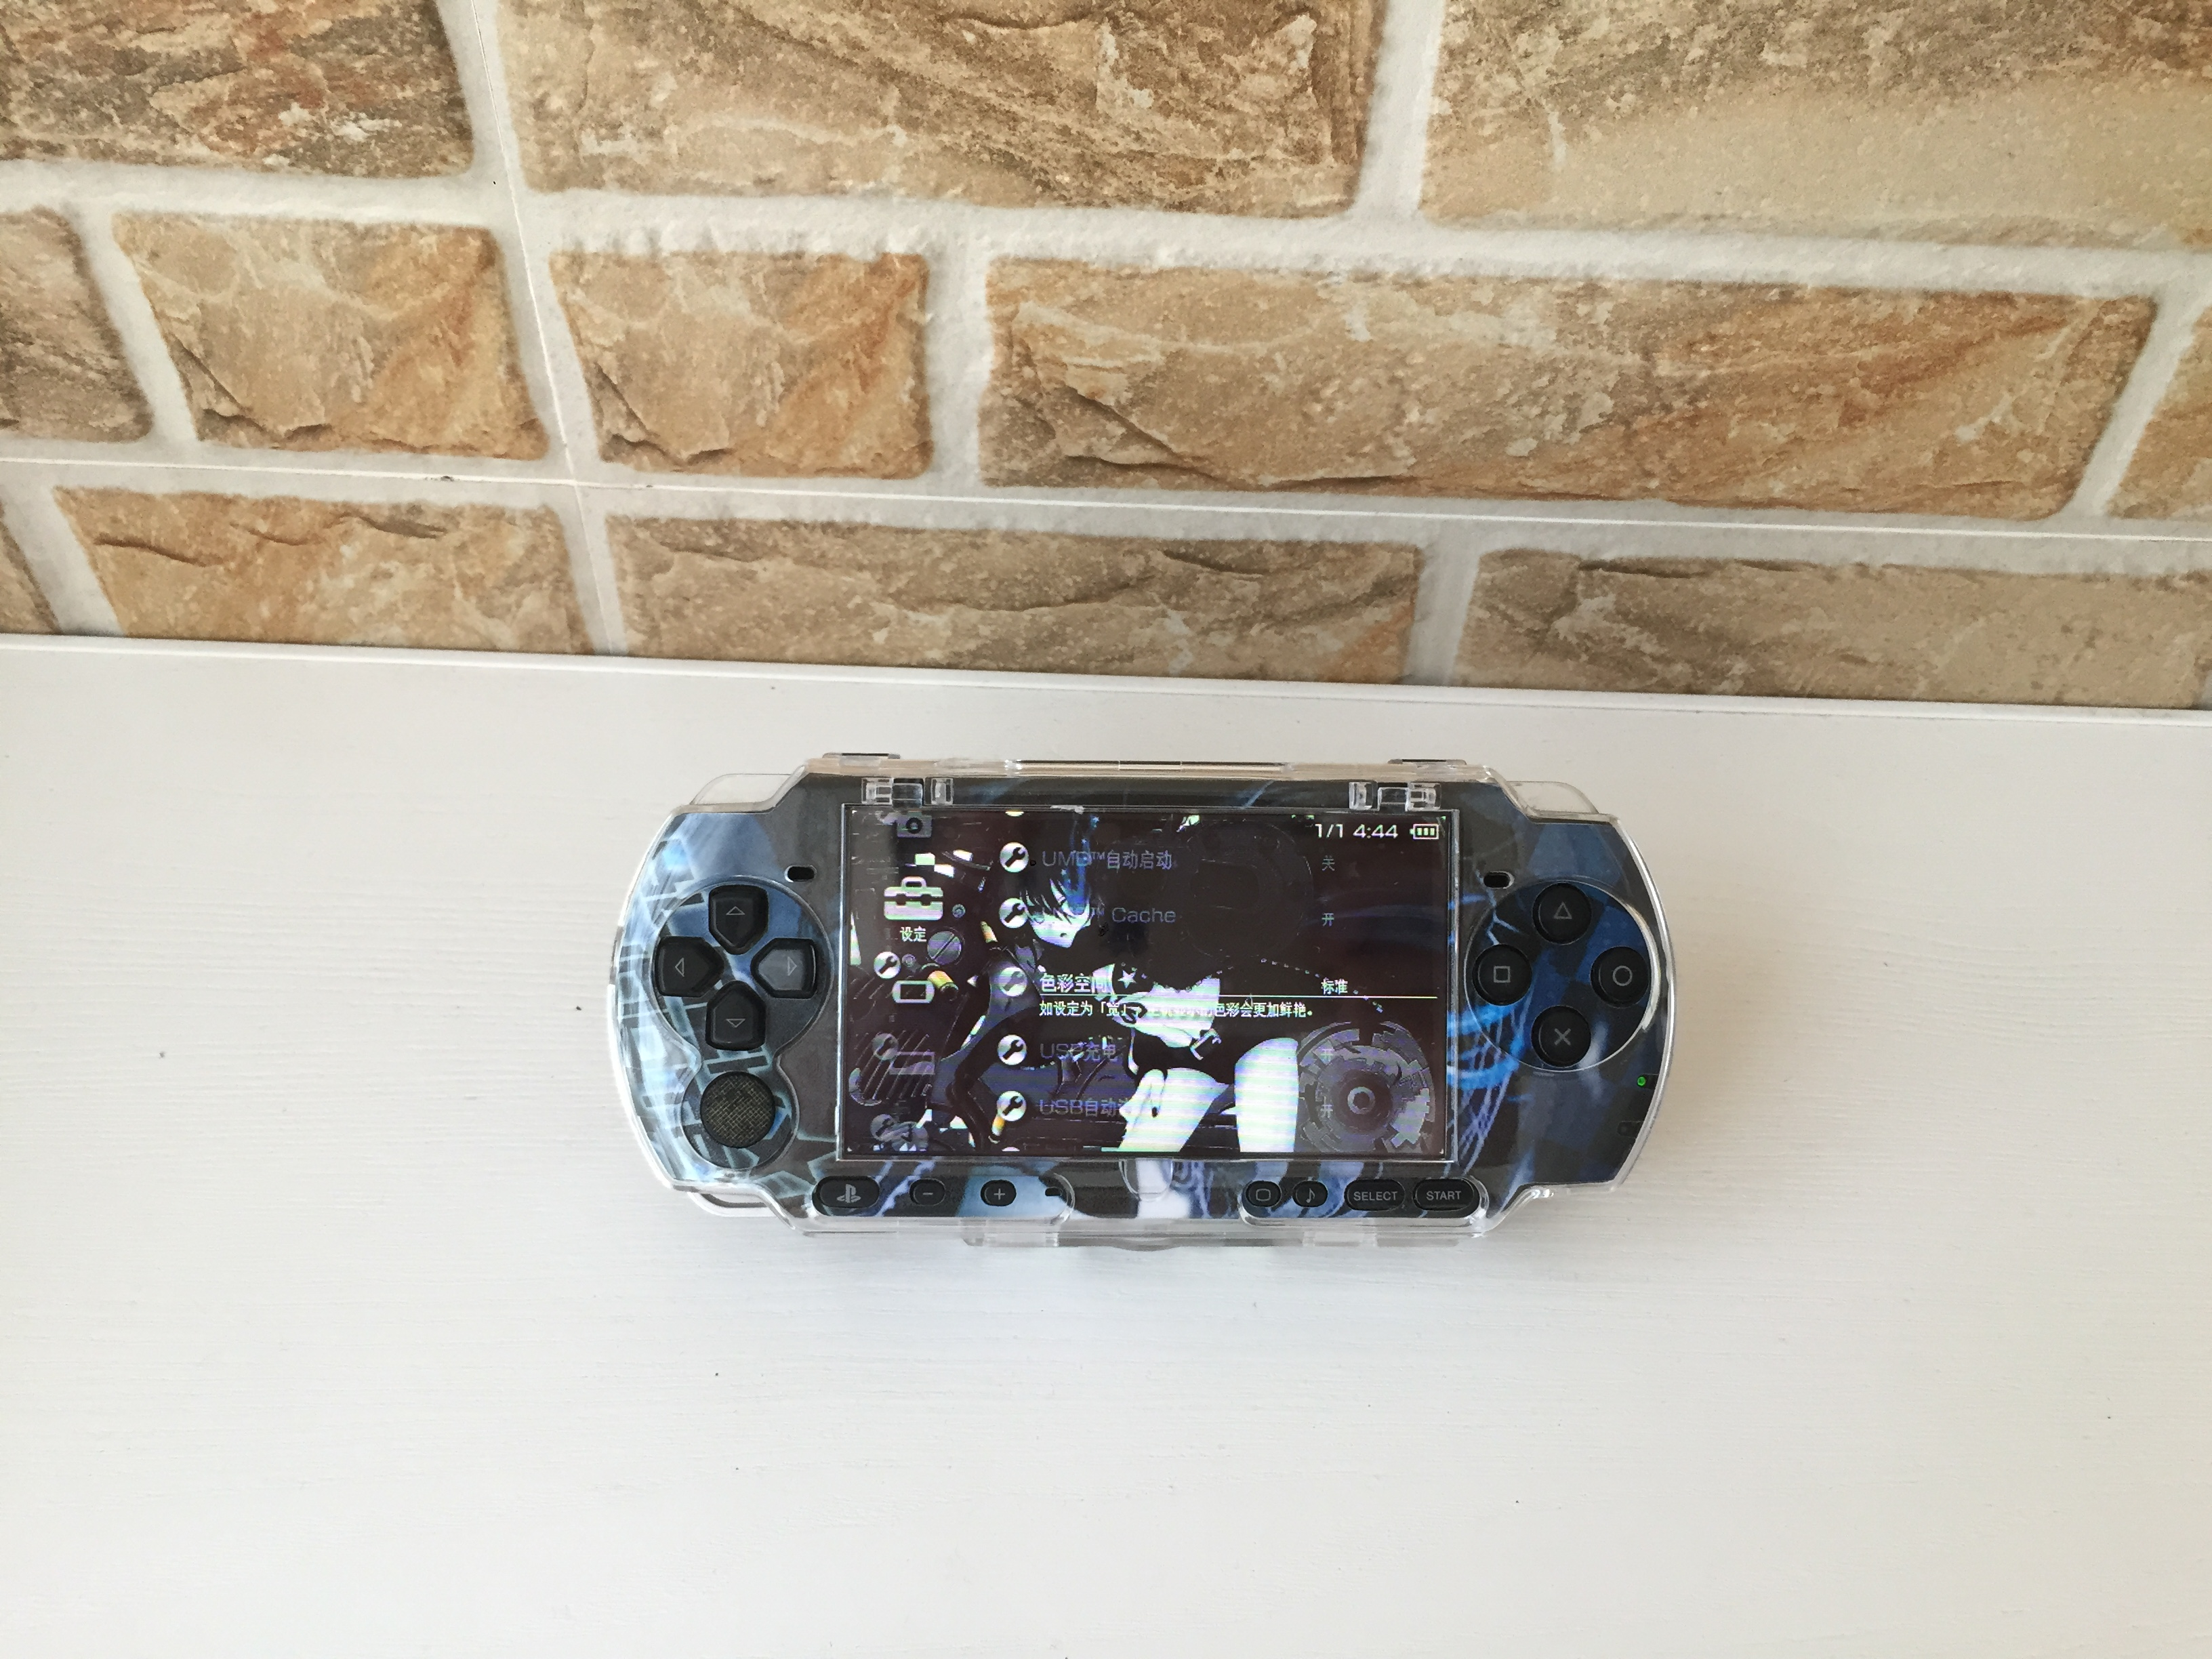 Sony genuine second-hand PSP2000 game console 32g full game, common with 3000 games